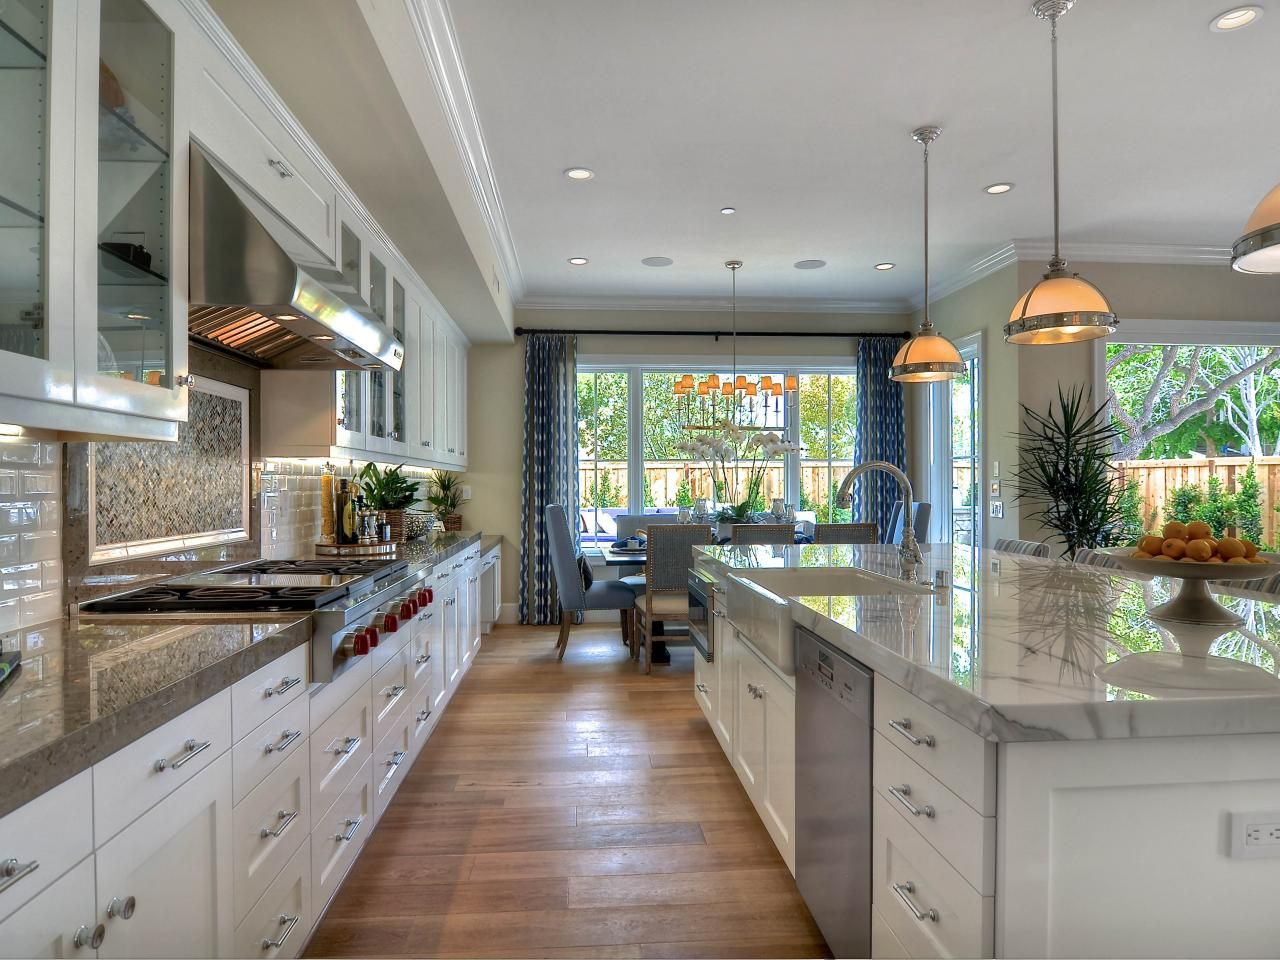 Slab kitchen cabinets  This beautiful white kitchen is bright and spacious Some of the